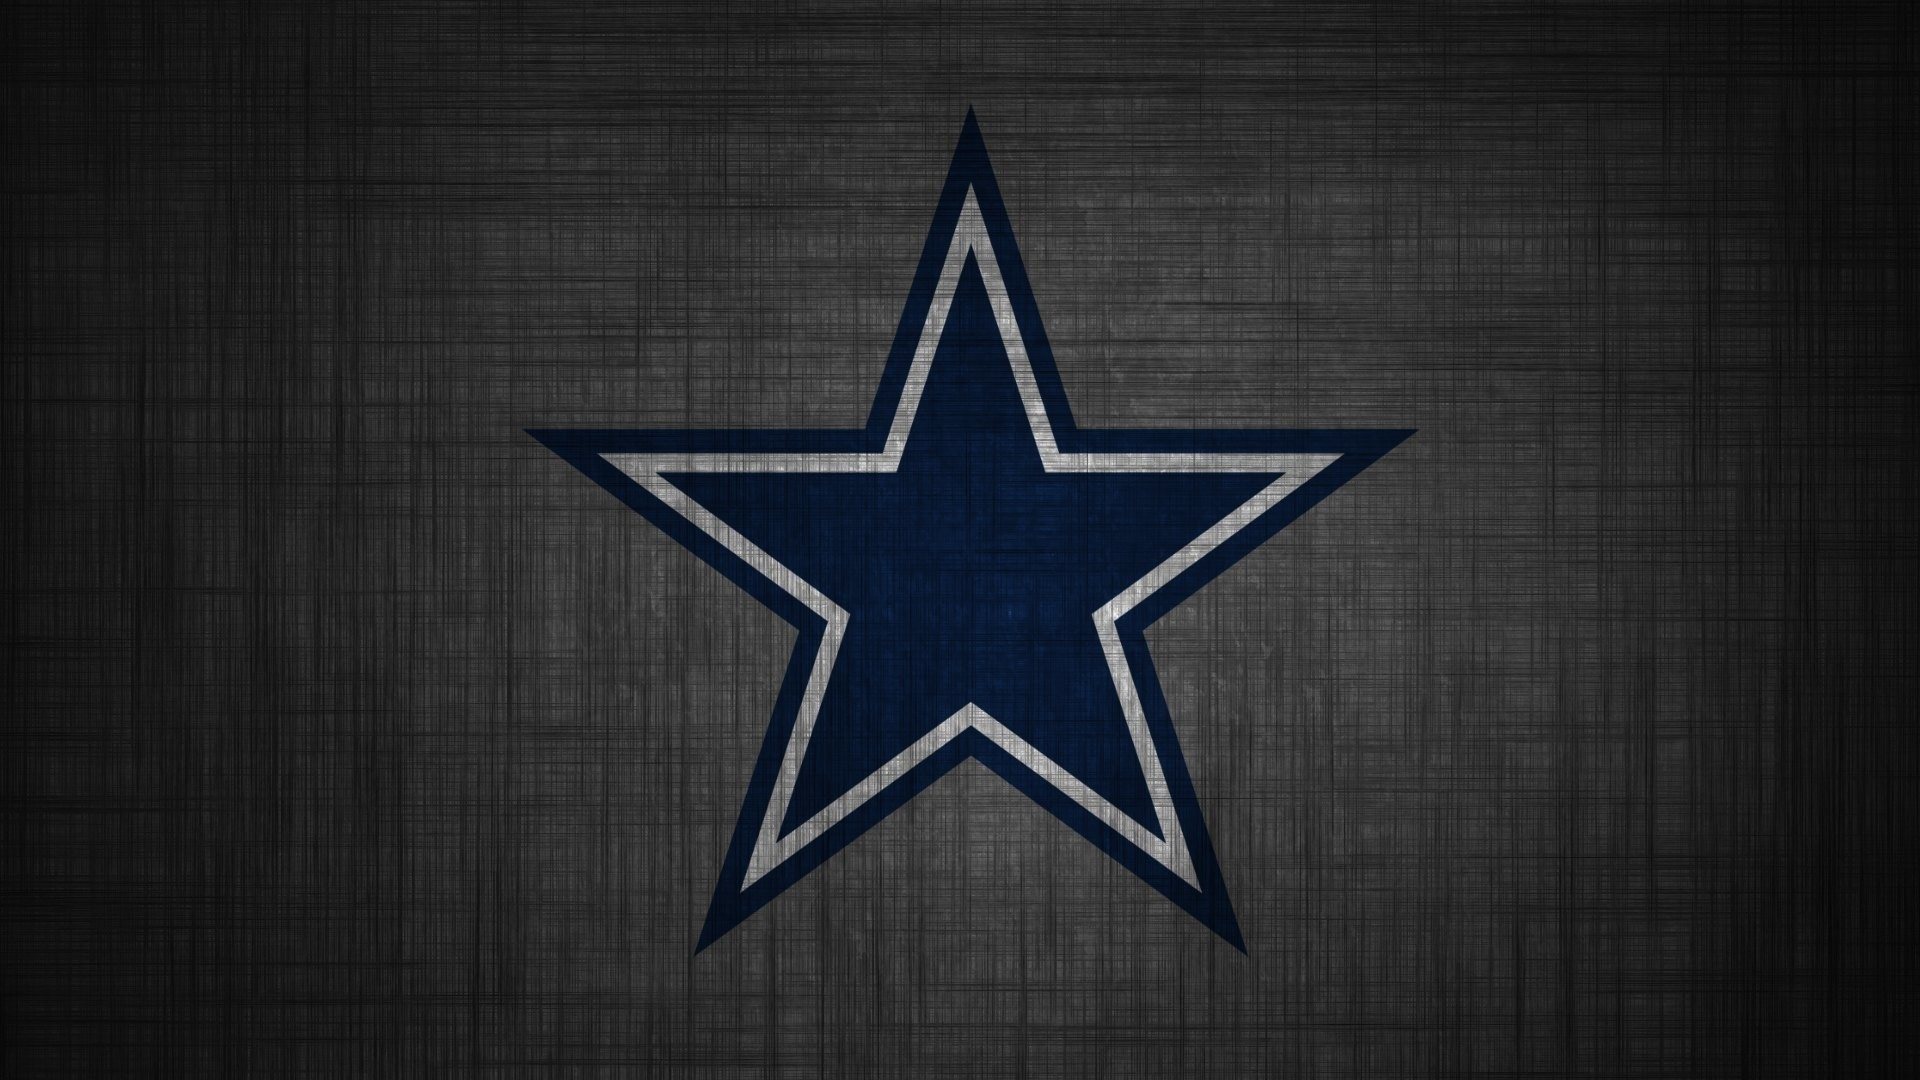 dallas cowboys computer wallpaper (57+ images)